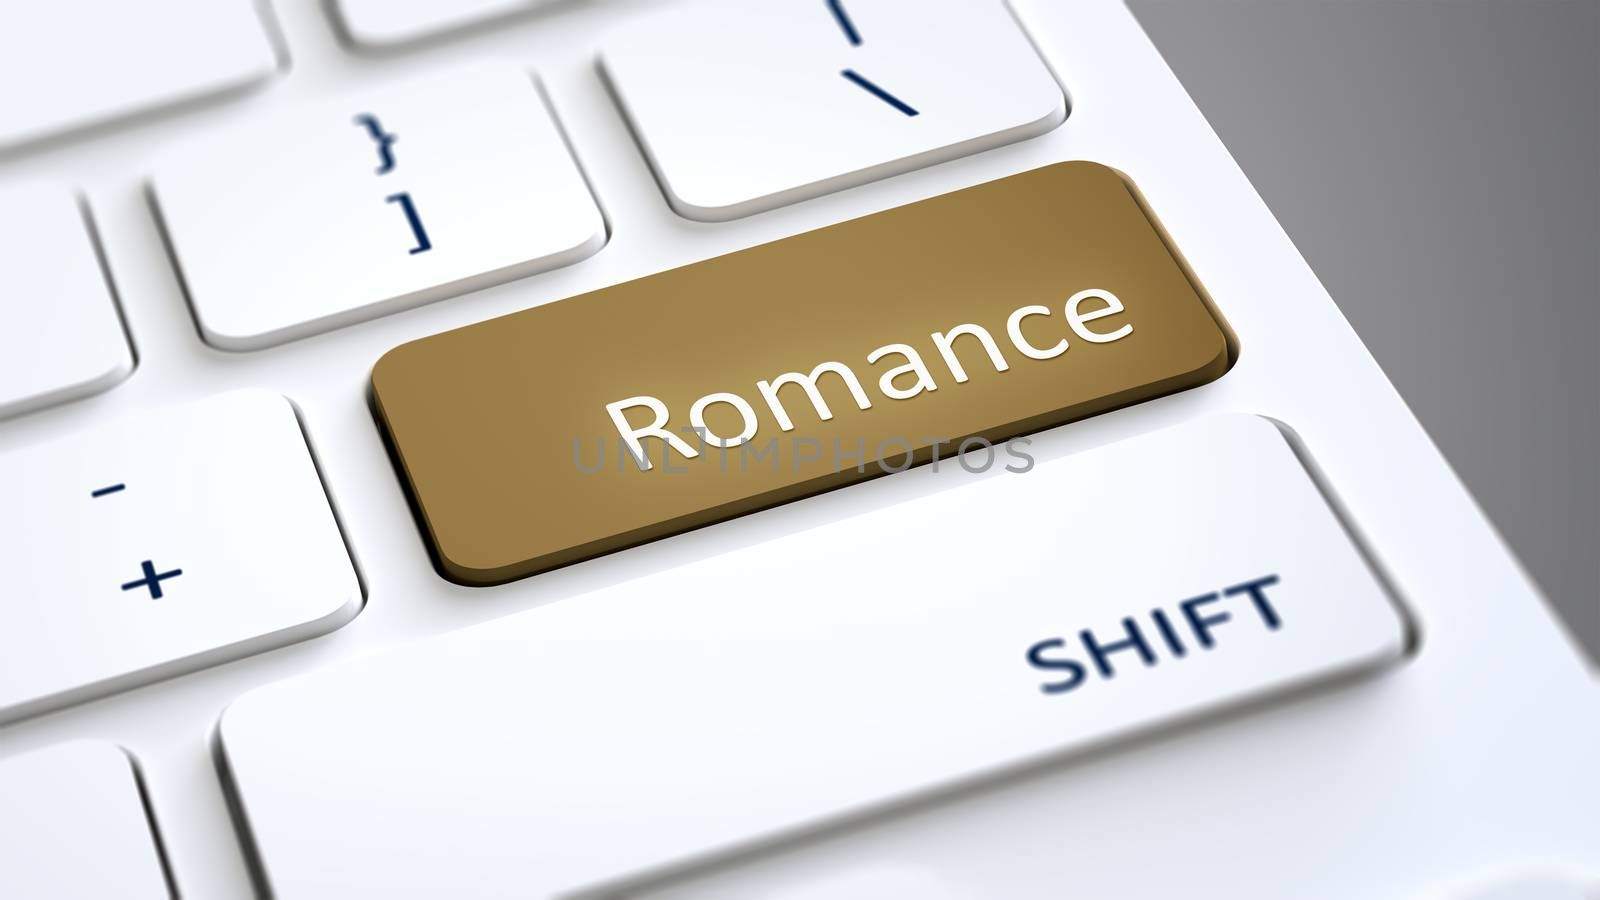 An image of a computer keyboard with text romance